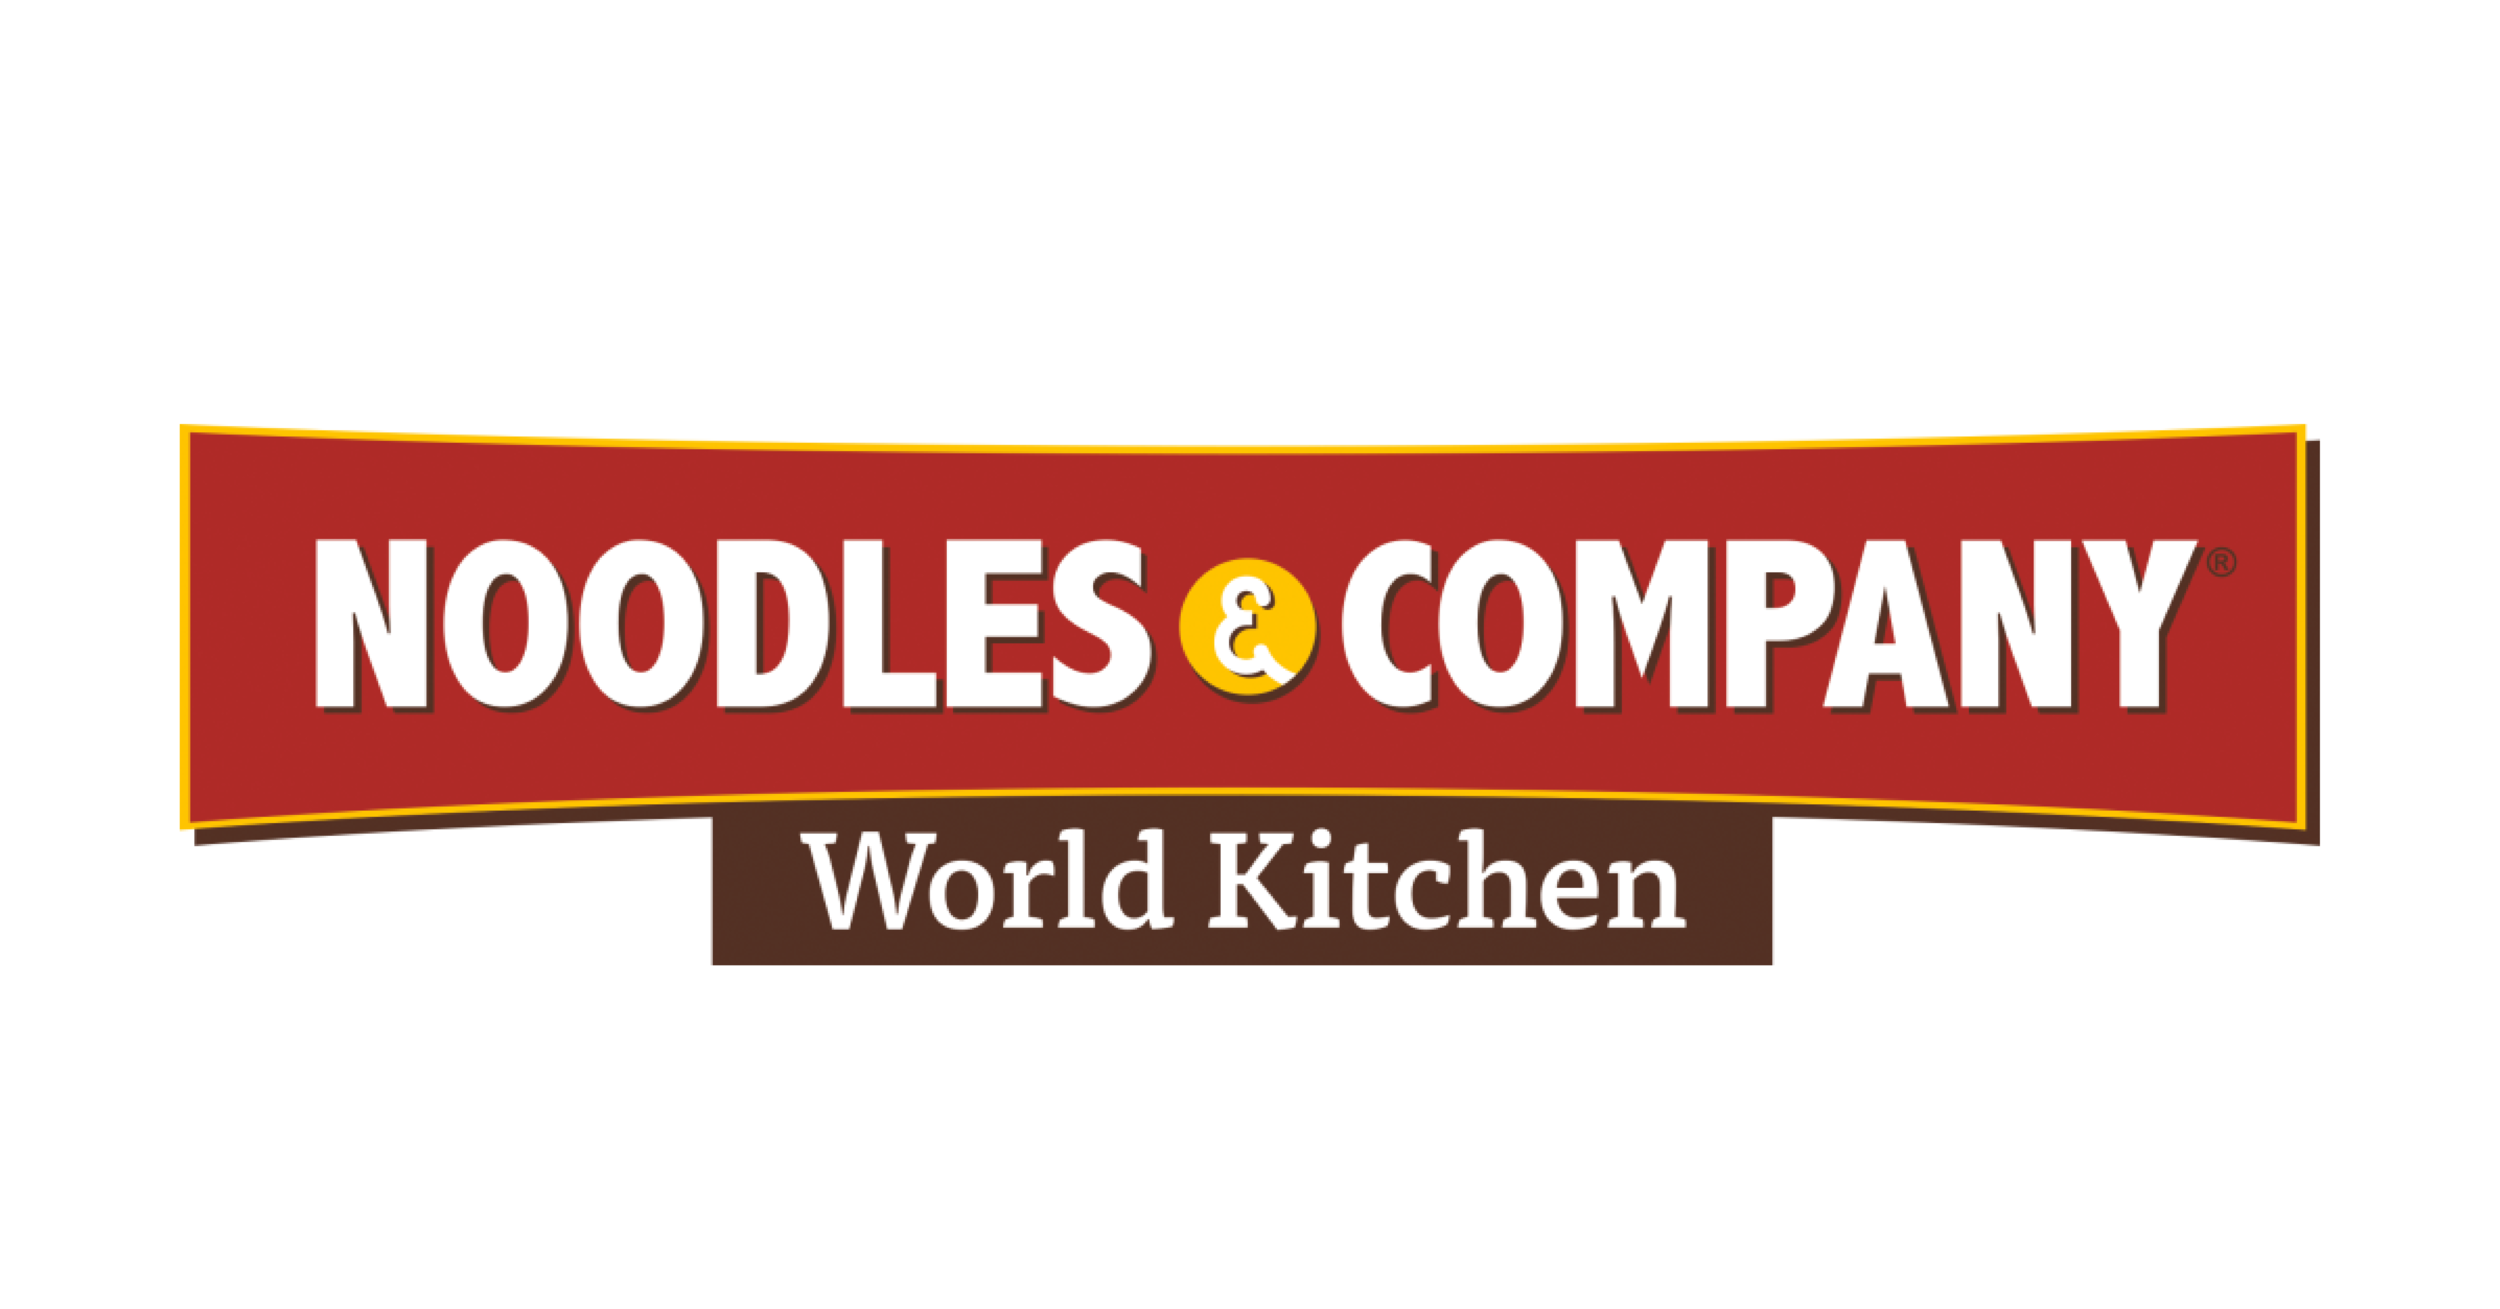 Plant-based tips for eating at Noodles & Company. Vegan menu options for Noodles and Company explained.